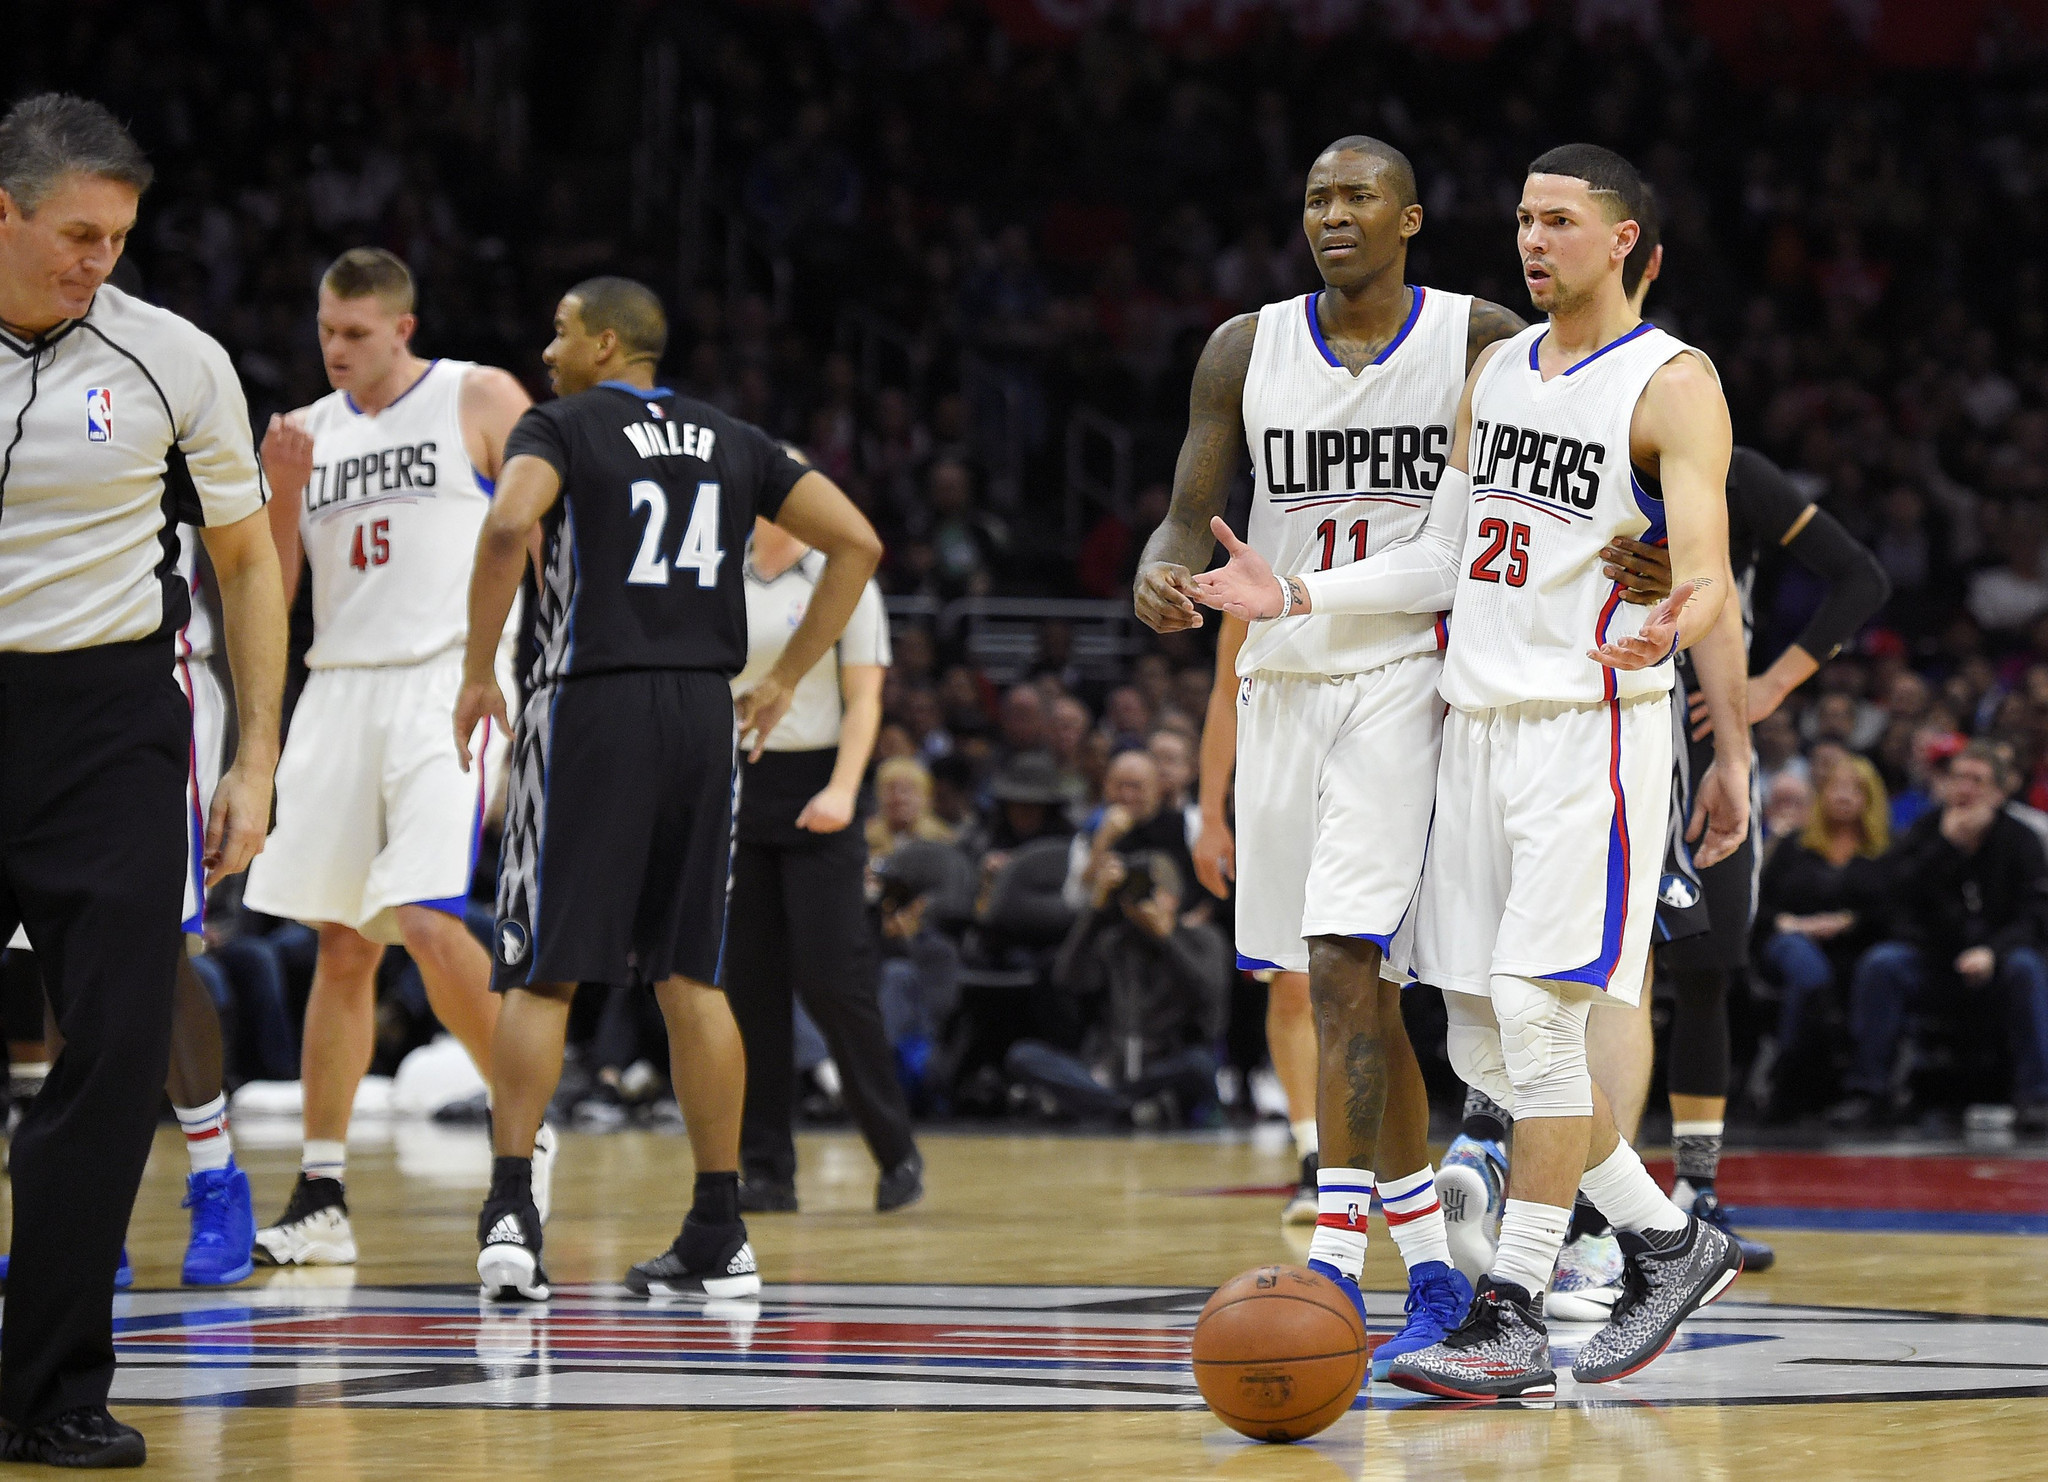 La-sp-clippers-report-20160208